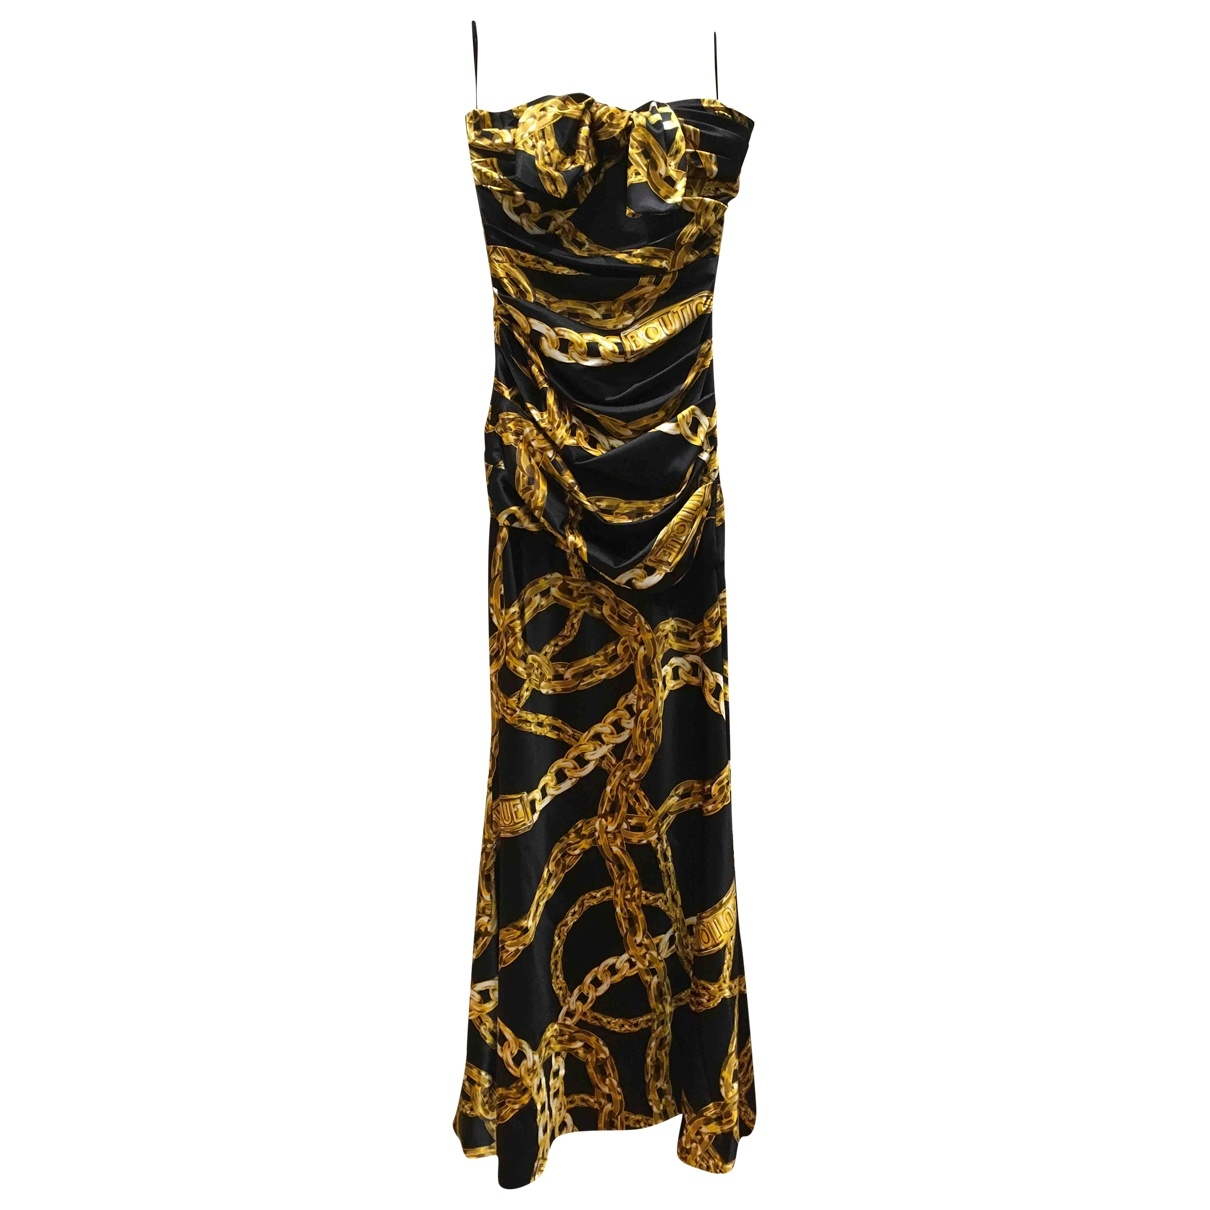 Moschino \N Multicolour dress for Women 42 IT